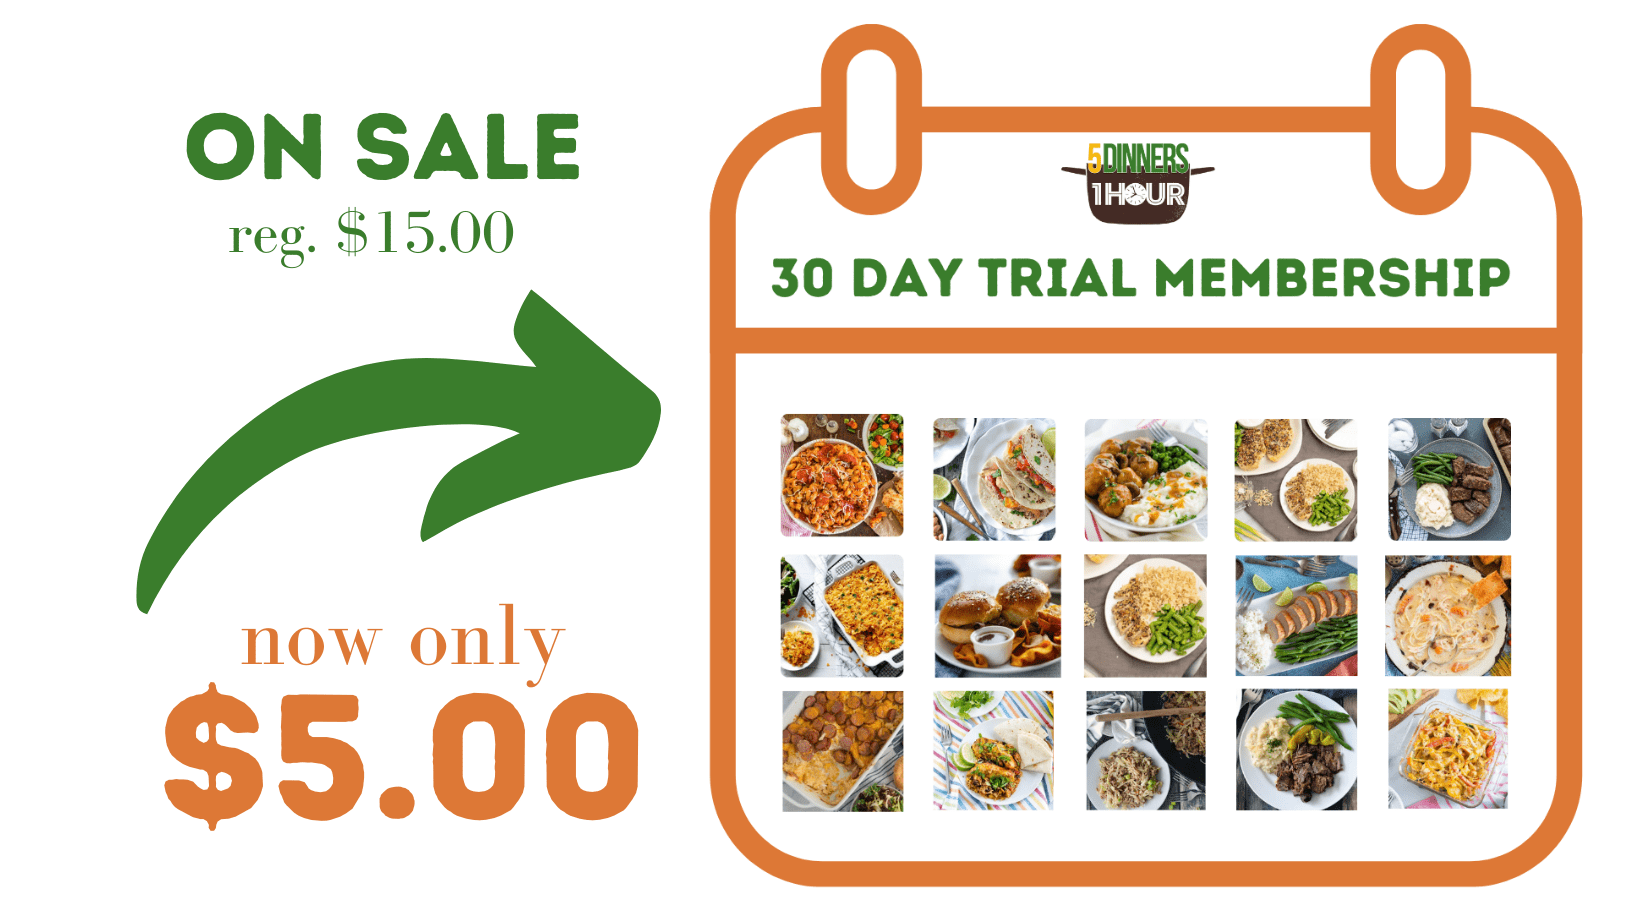 purchase five dinners in one hour thrity day trial here